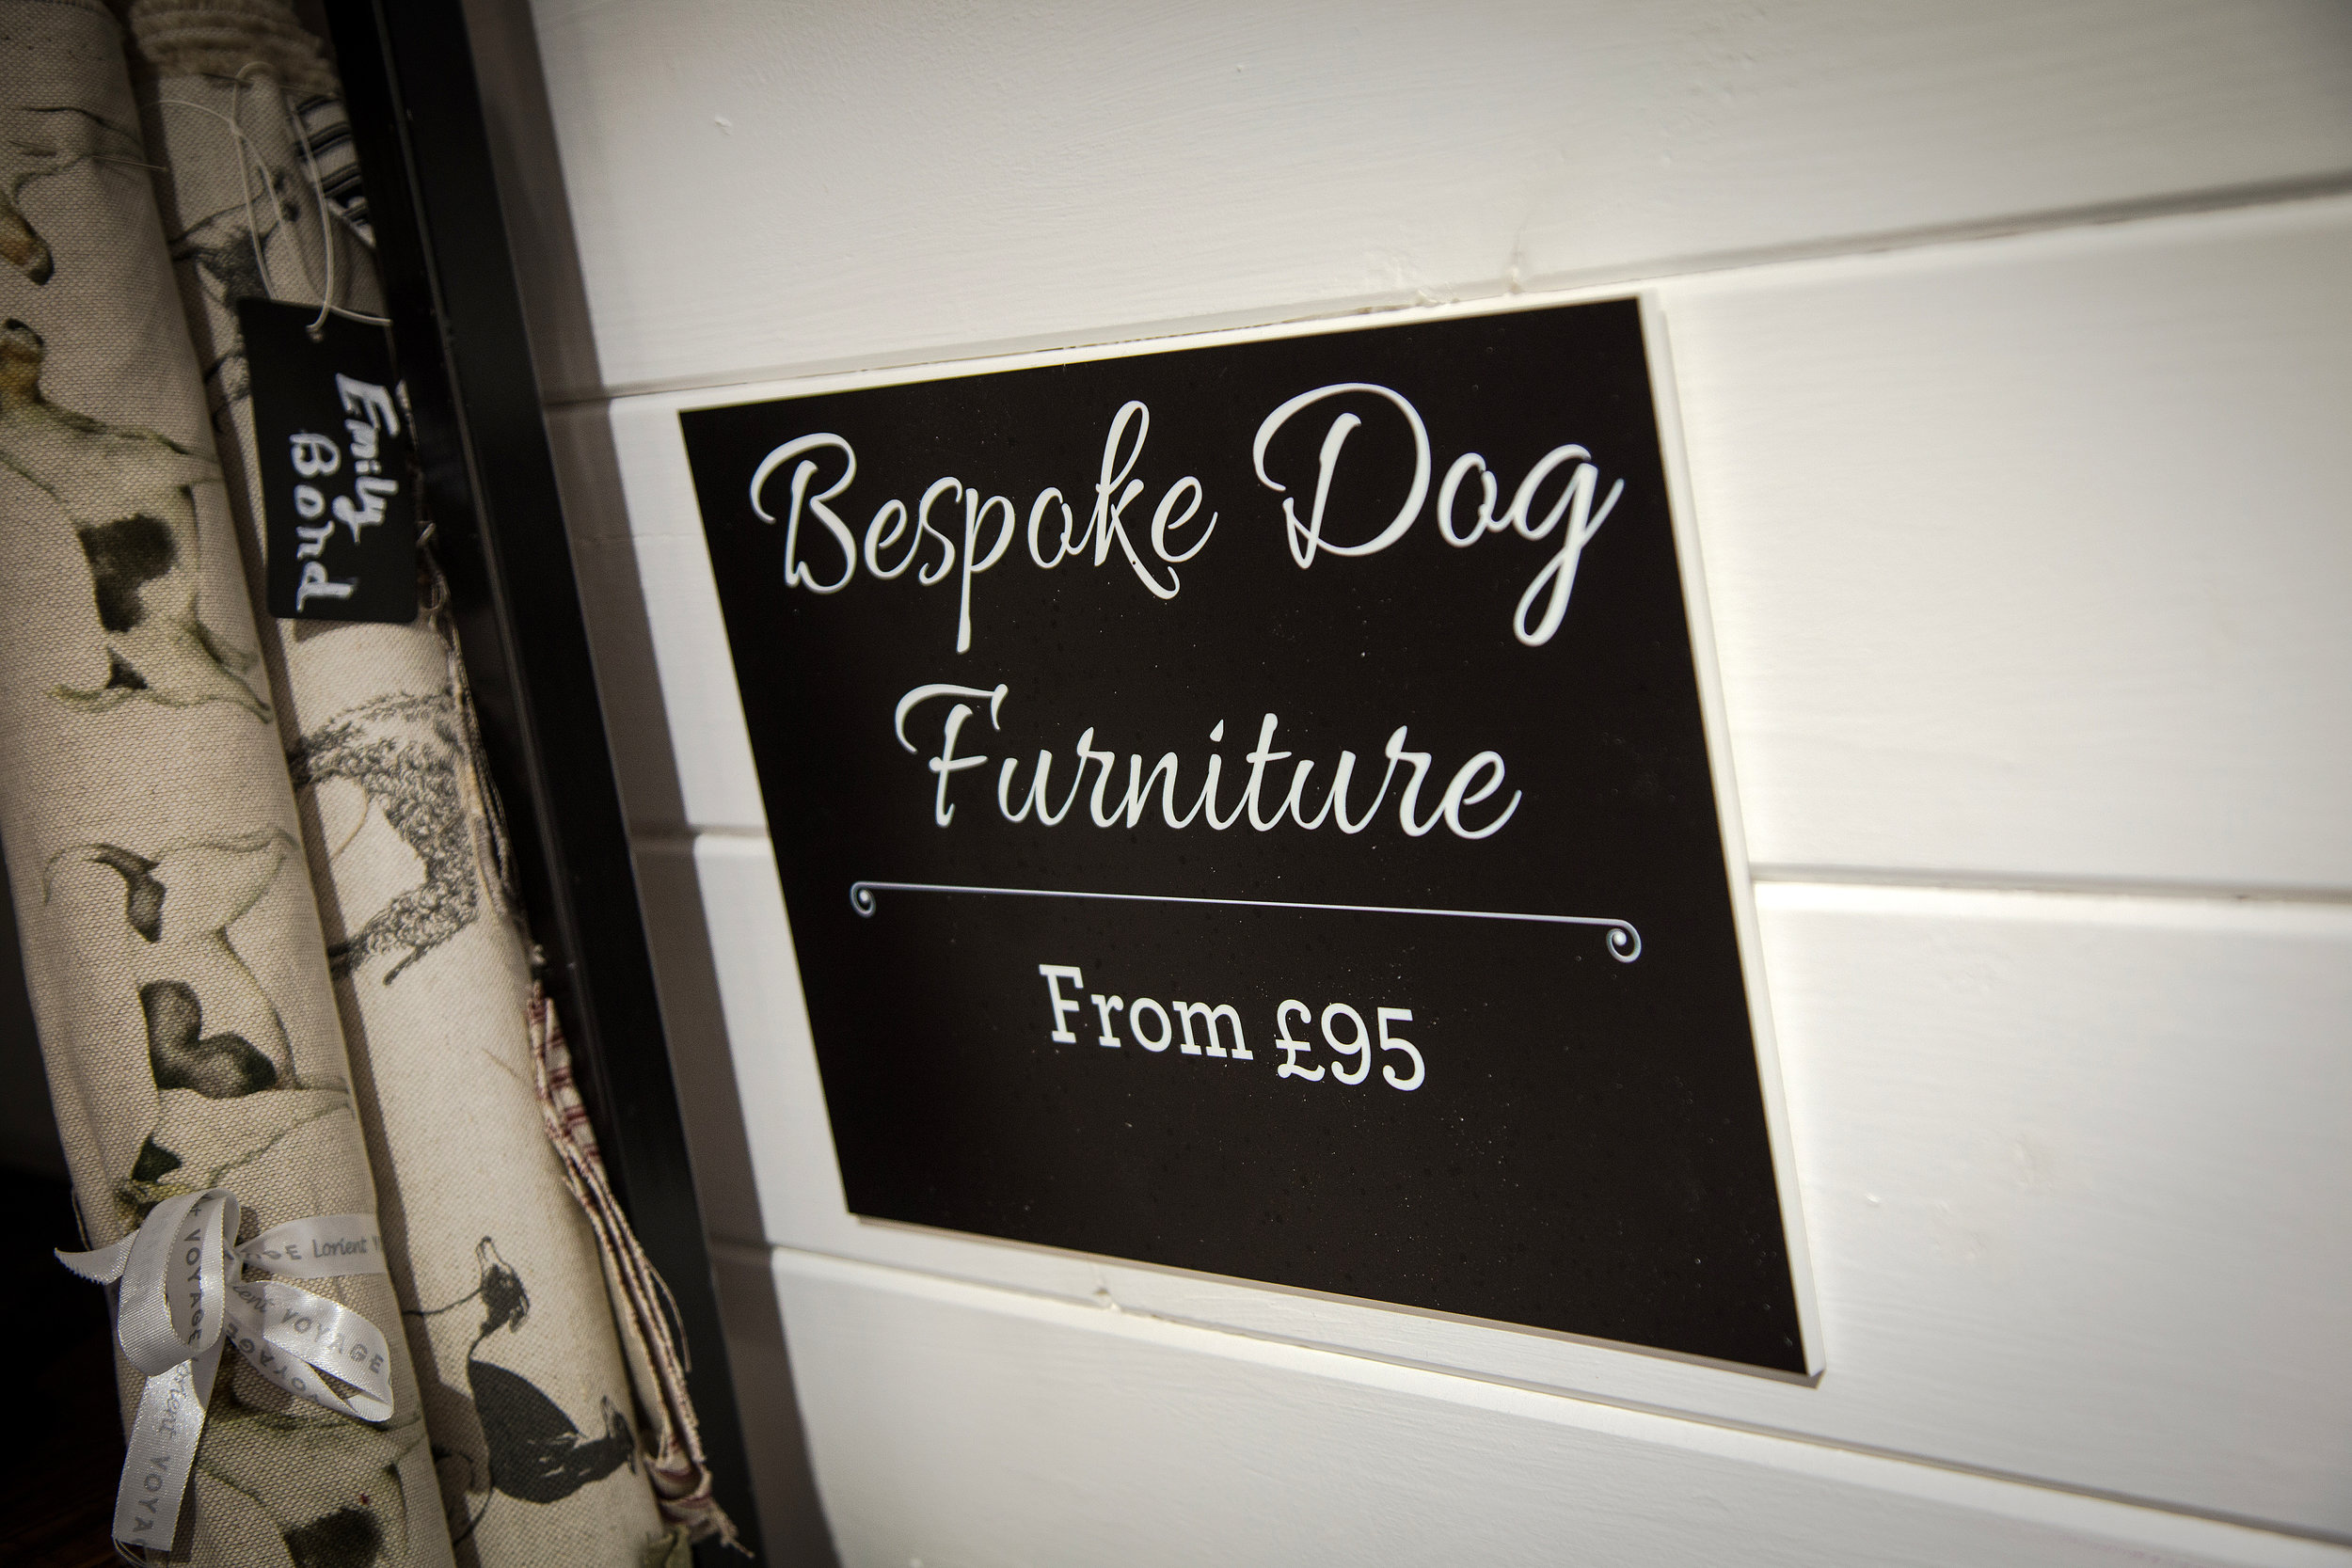 bespoke dog furniture